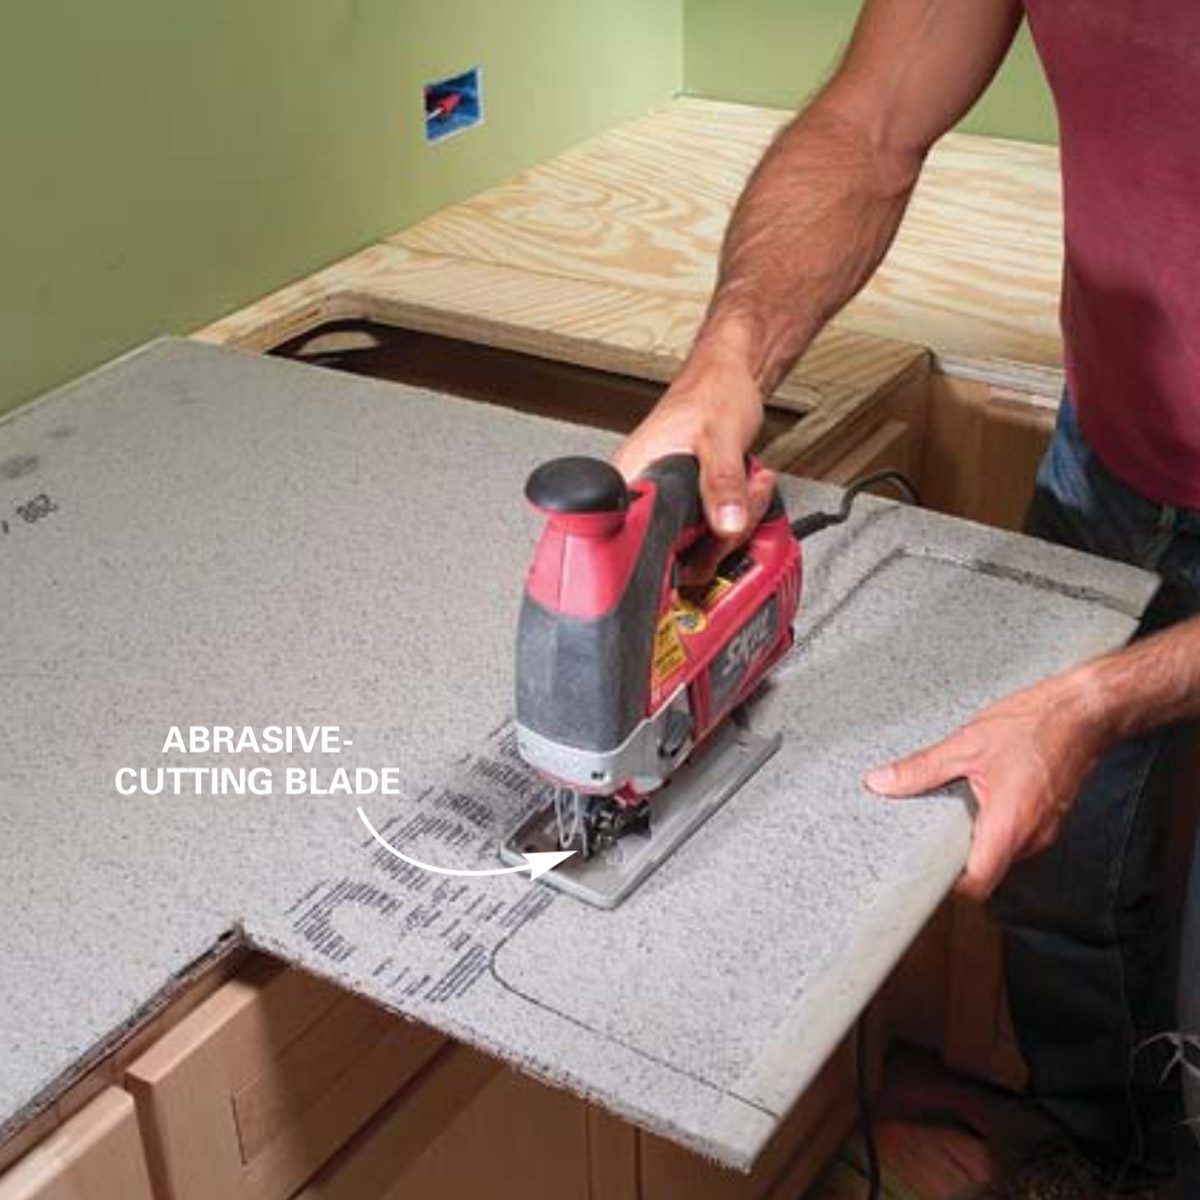 Remove Permanent Marker From Granite Countertop Installing Tile Countertops Ceramic Tile Kitchen